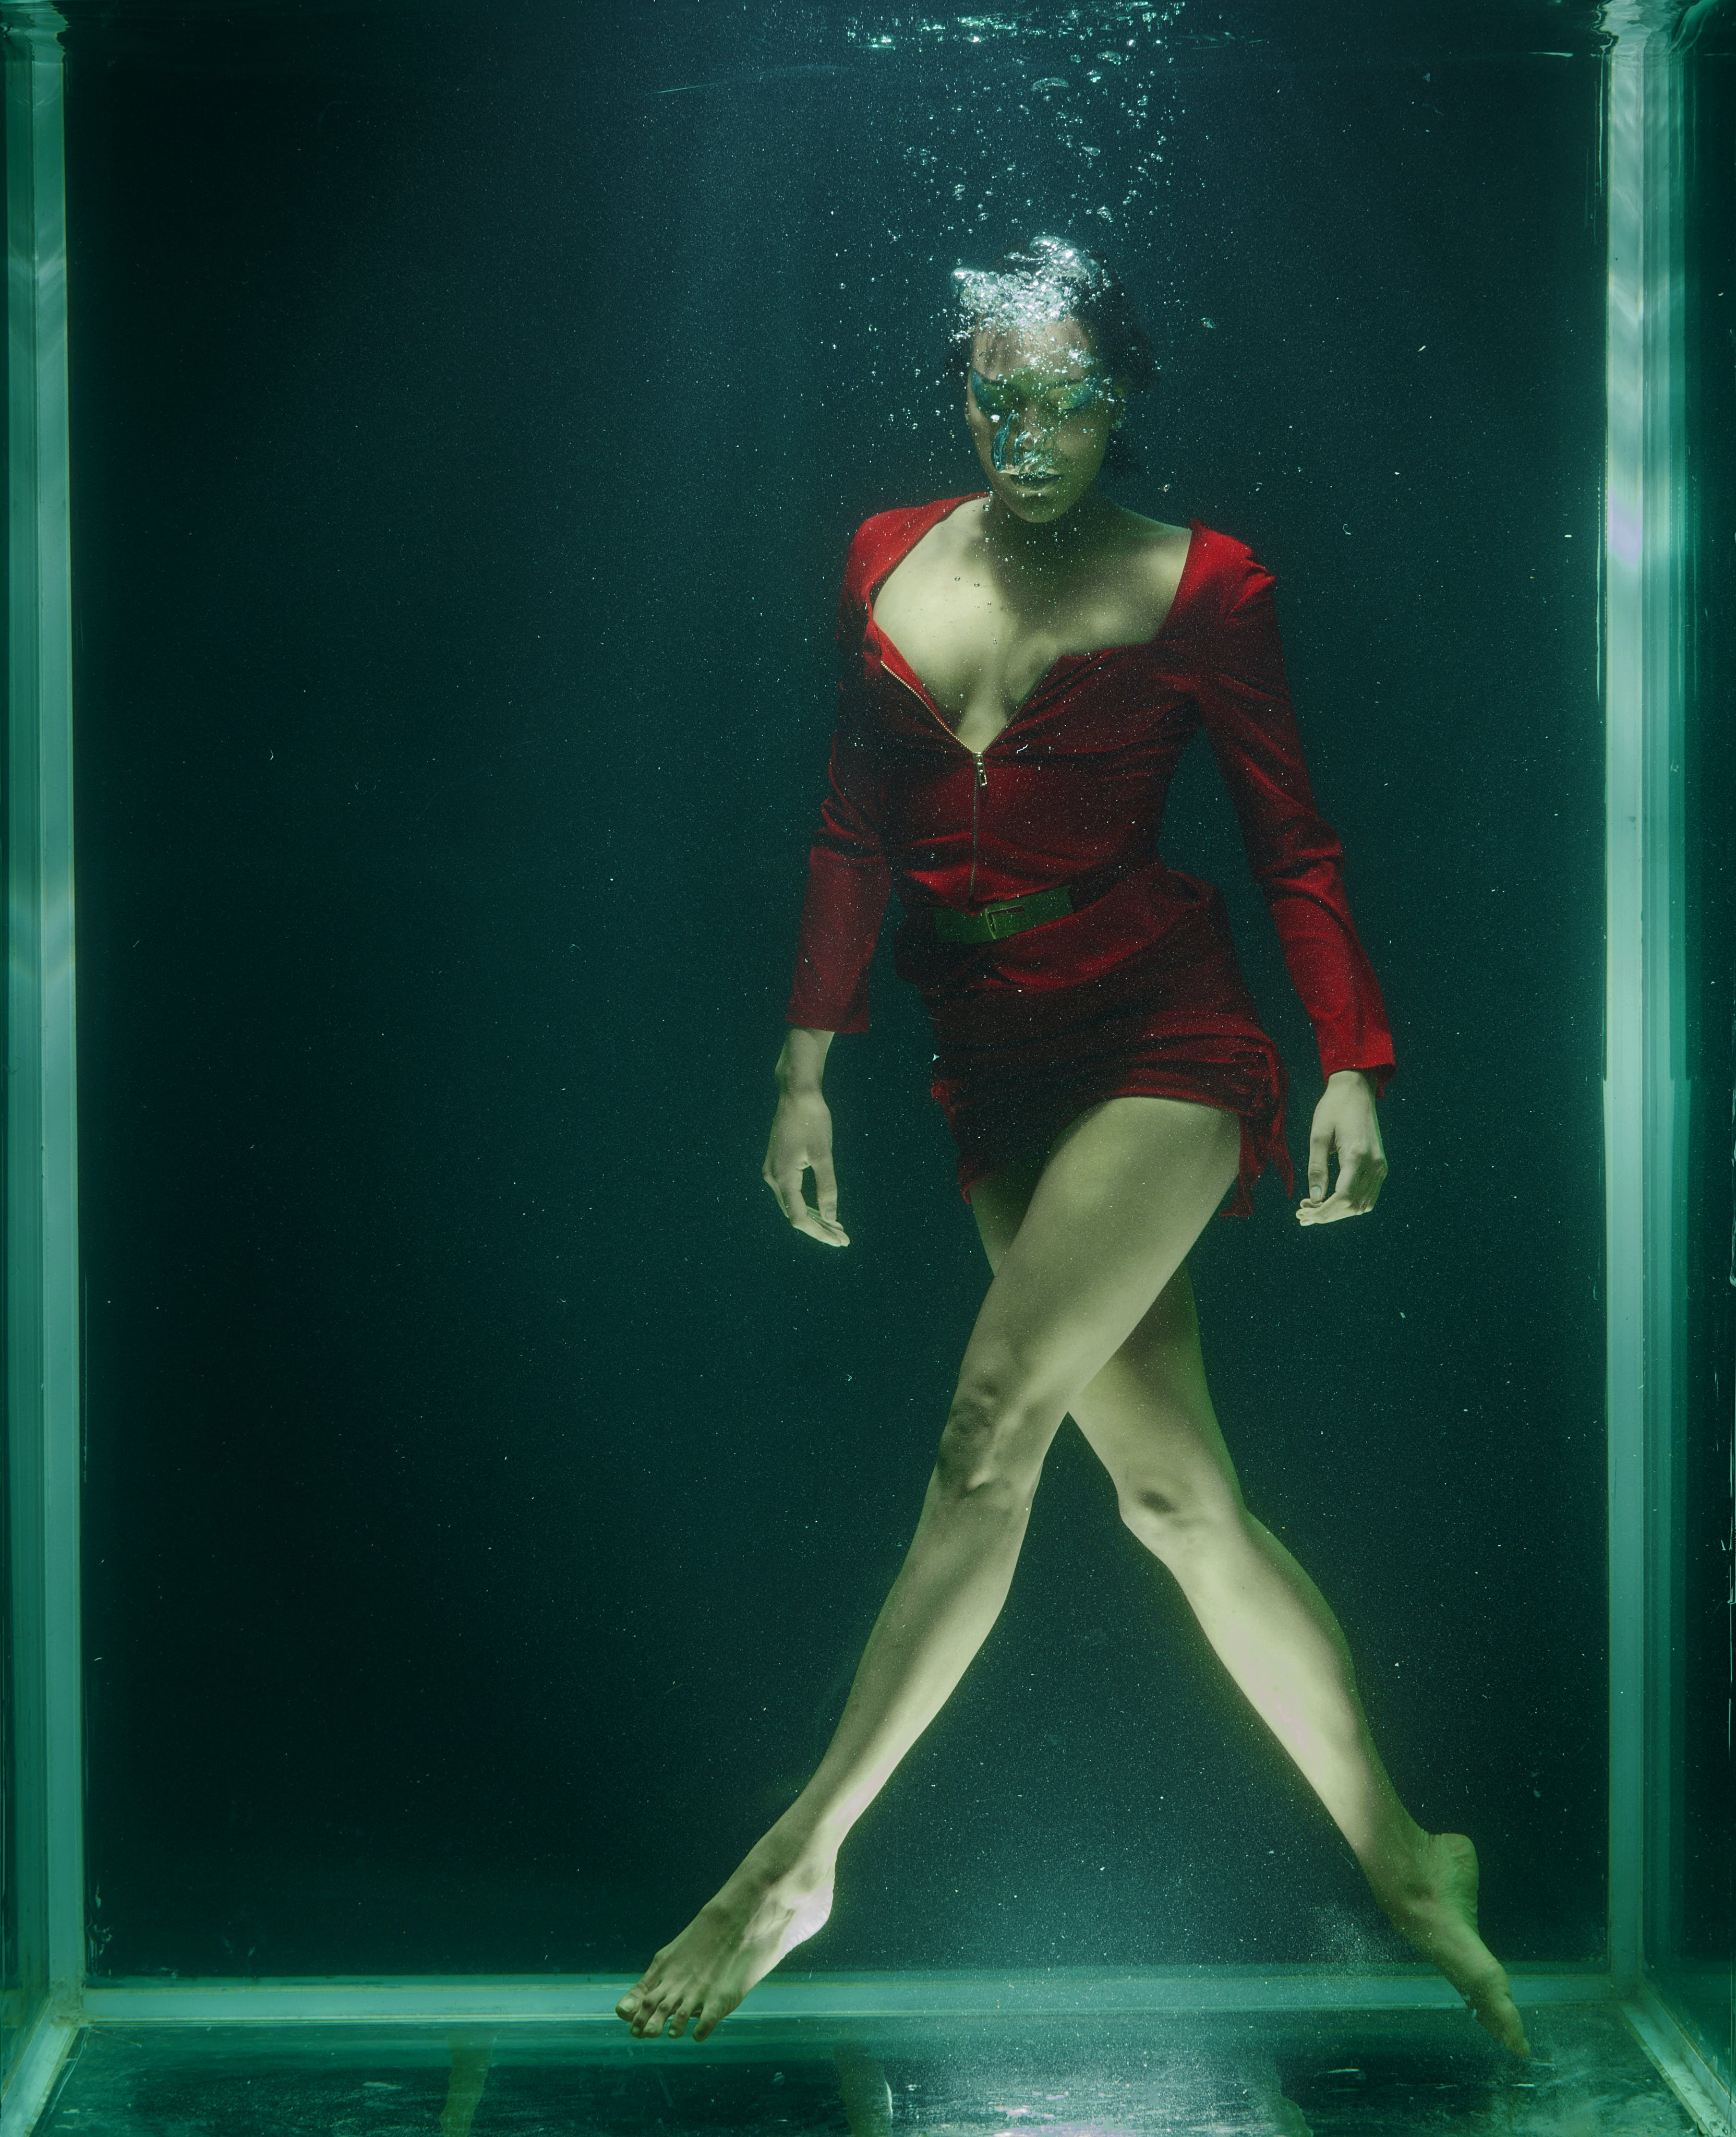 Woman Wearing Red Long-sleeved Shirt Underwater